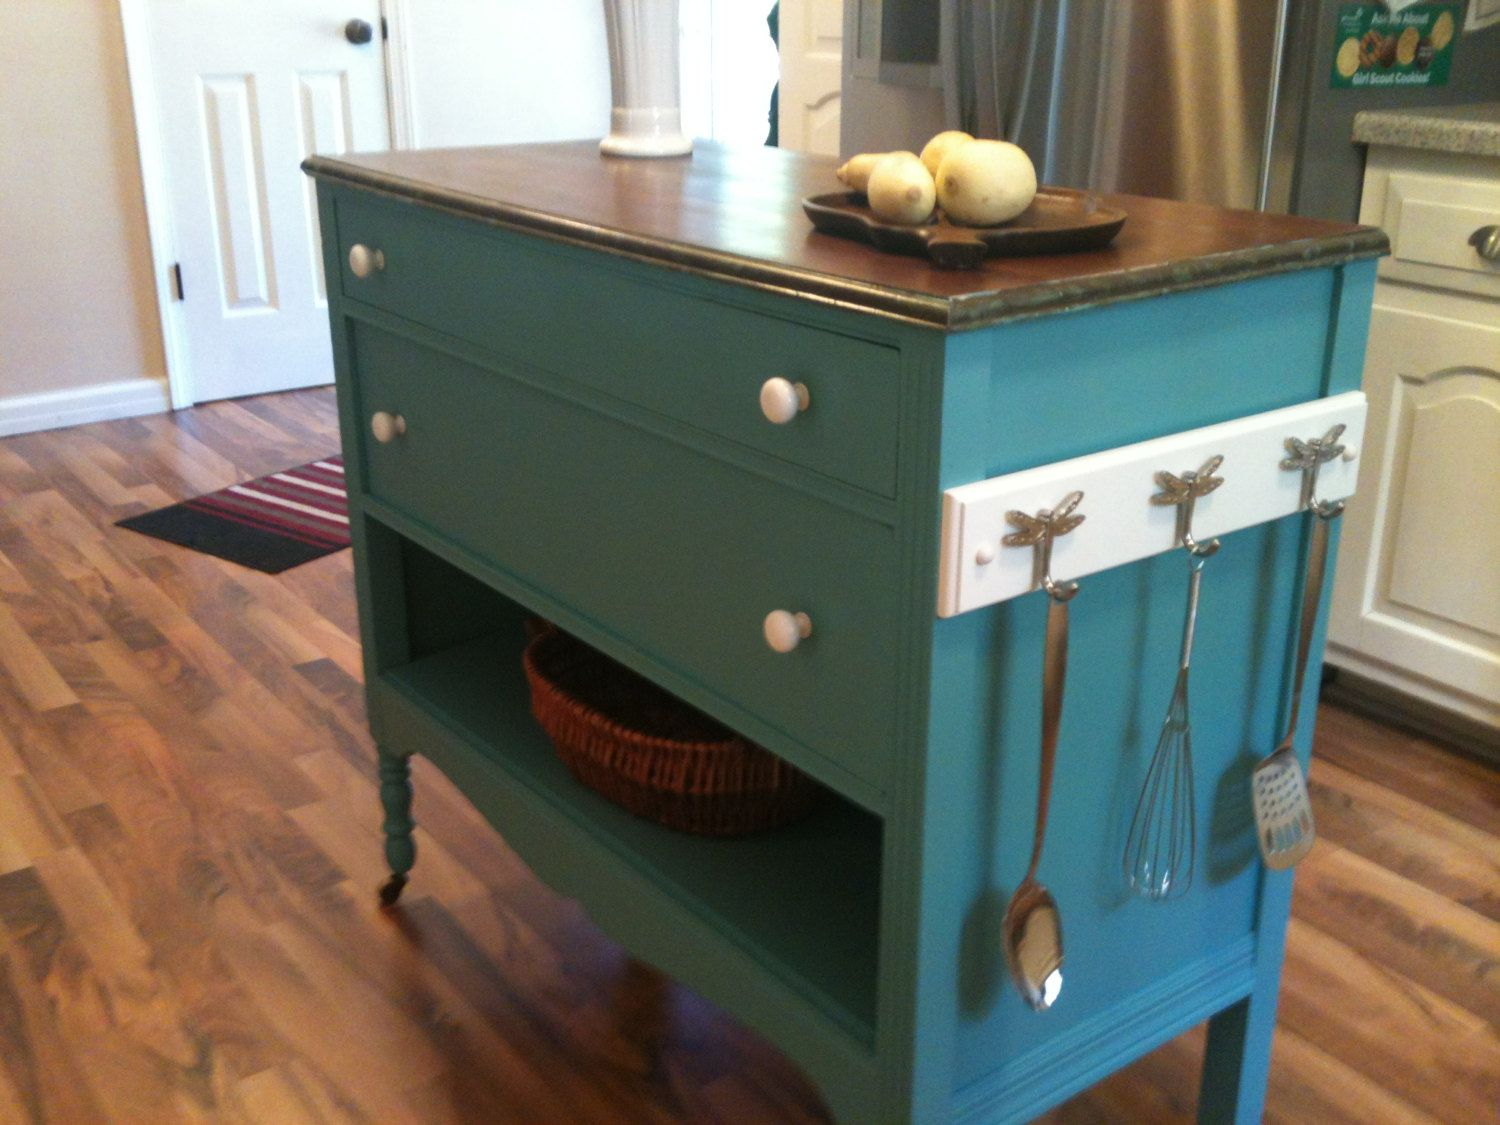 Repurposed Upcycled Dresser Made Into Charming Turquoise Aqua Kitchen Island